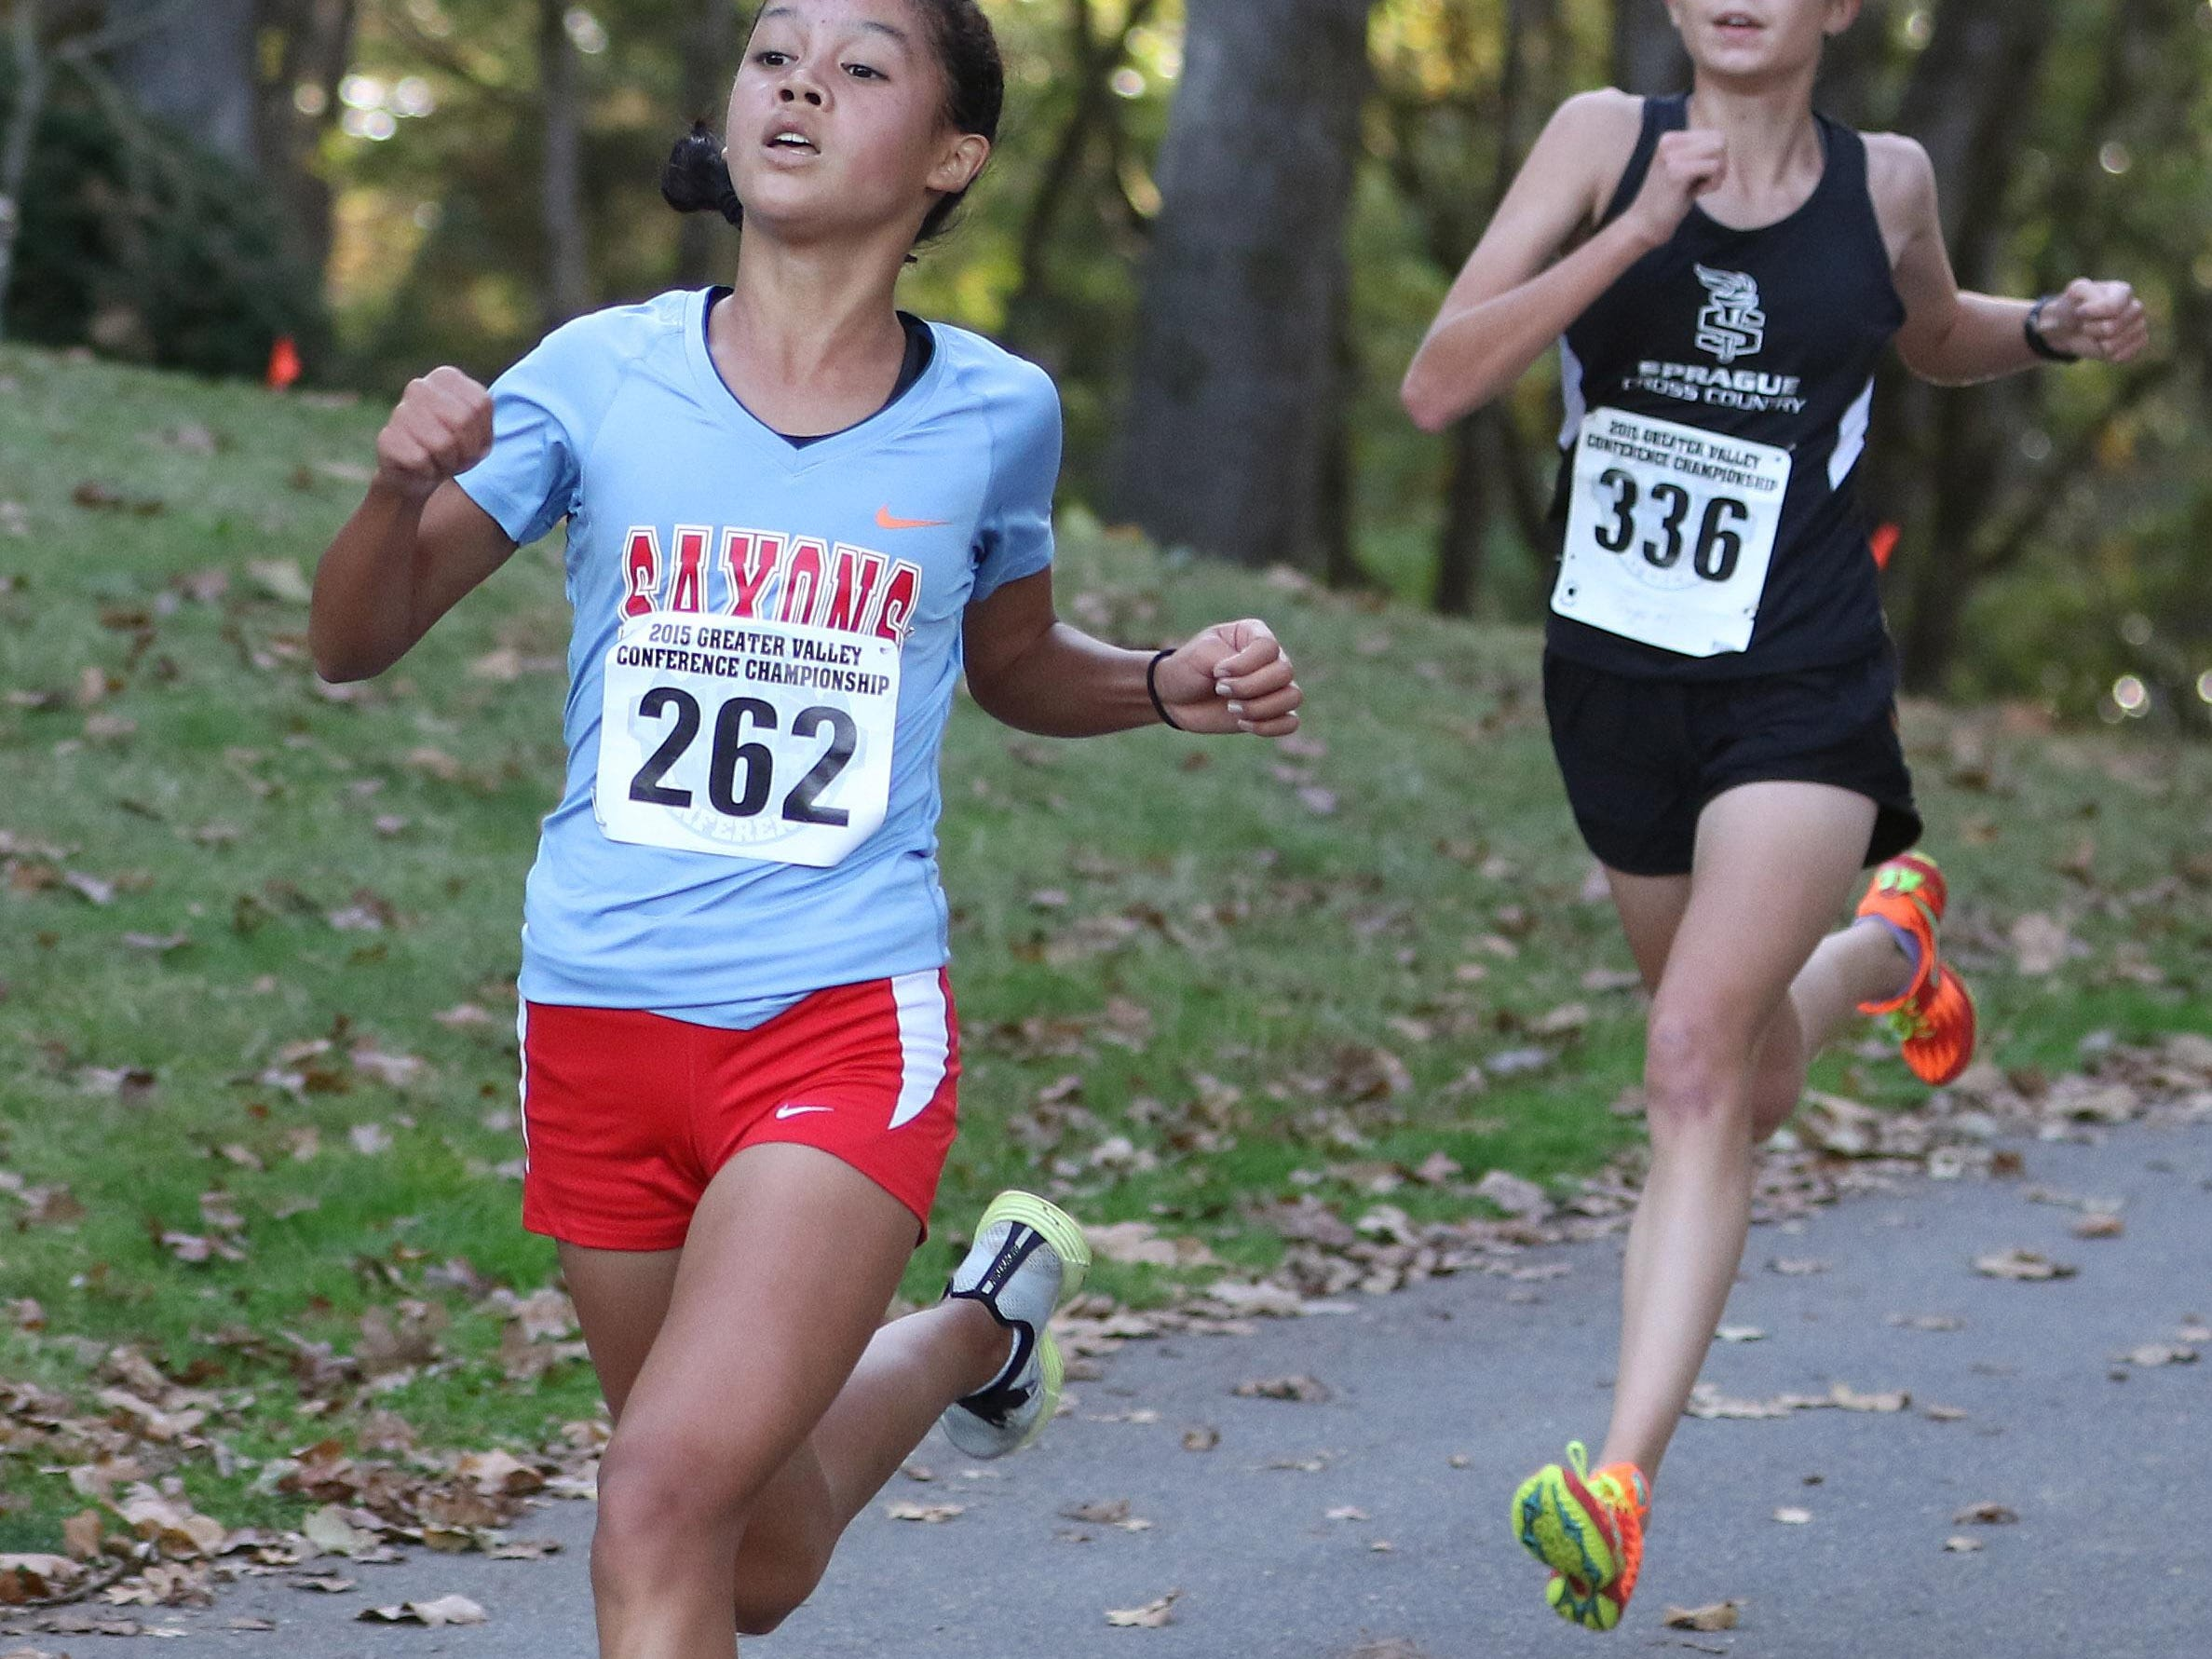 South Salem's Anna Chau and Sprague's Ginger Murnieks race in the Greater Valley Conference District Cross Country meet Wednesday, Oct. 21, 2015, at Bush's Pasture Park in Salem. Chau won the meet with a time of 17:52.